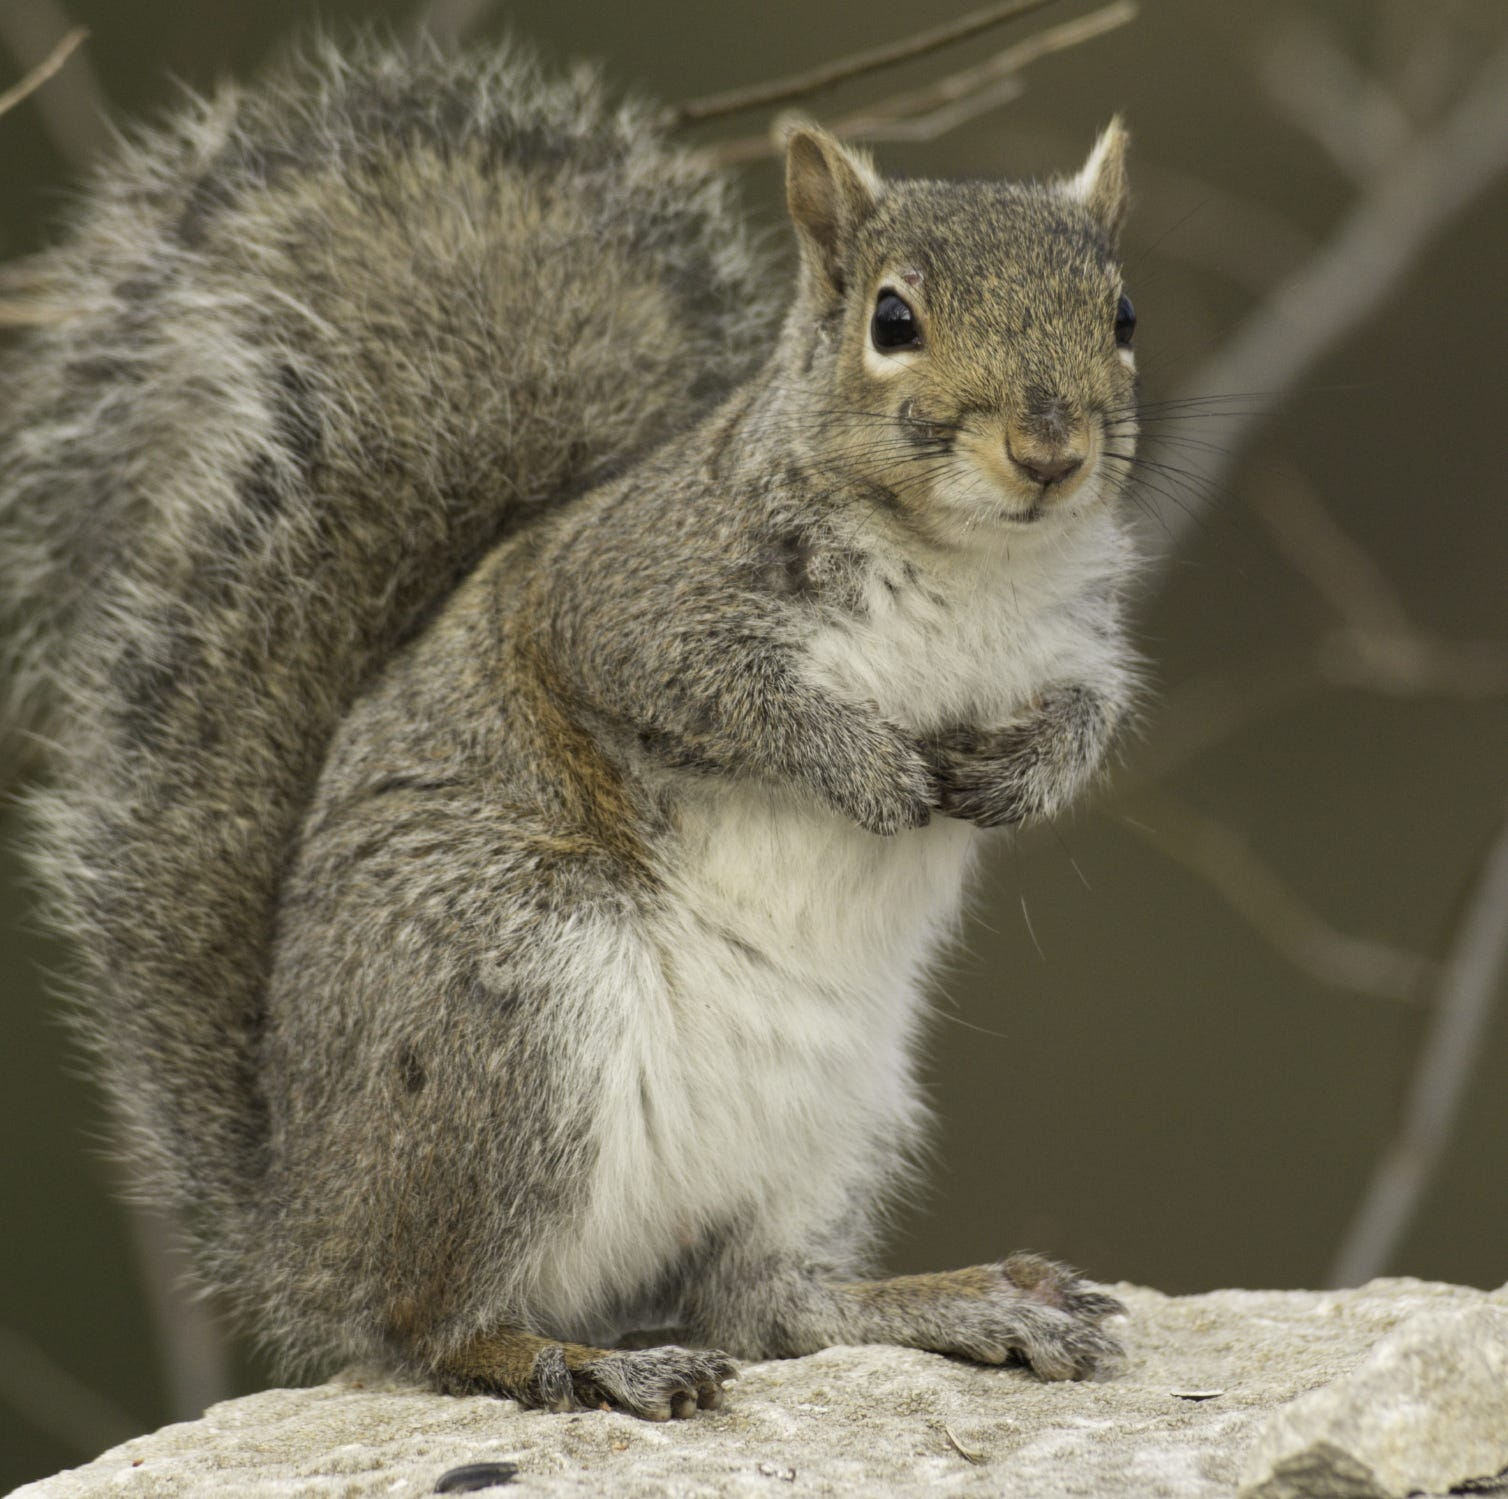 Glut of squirrels factor in hunting season changes